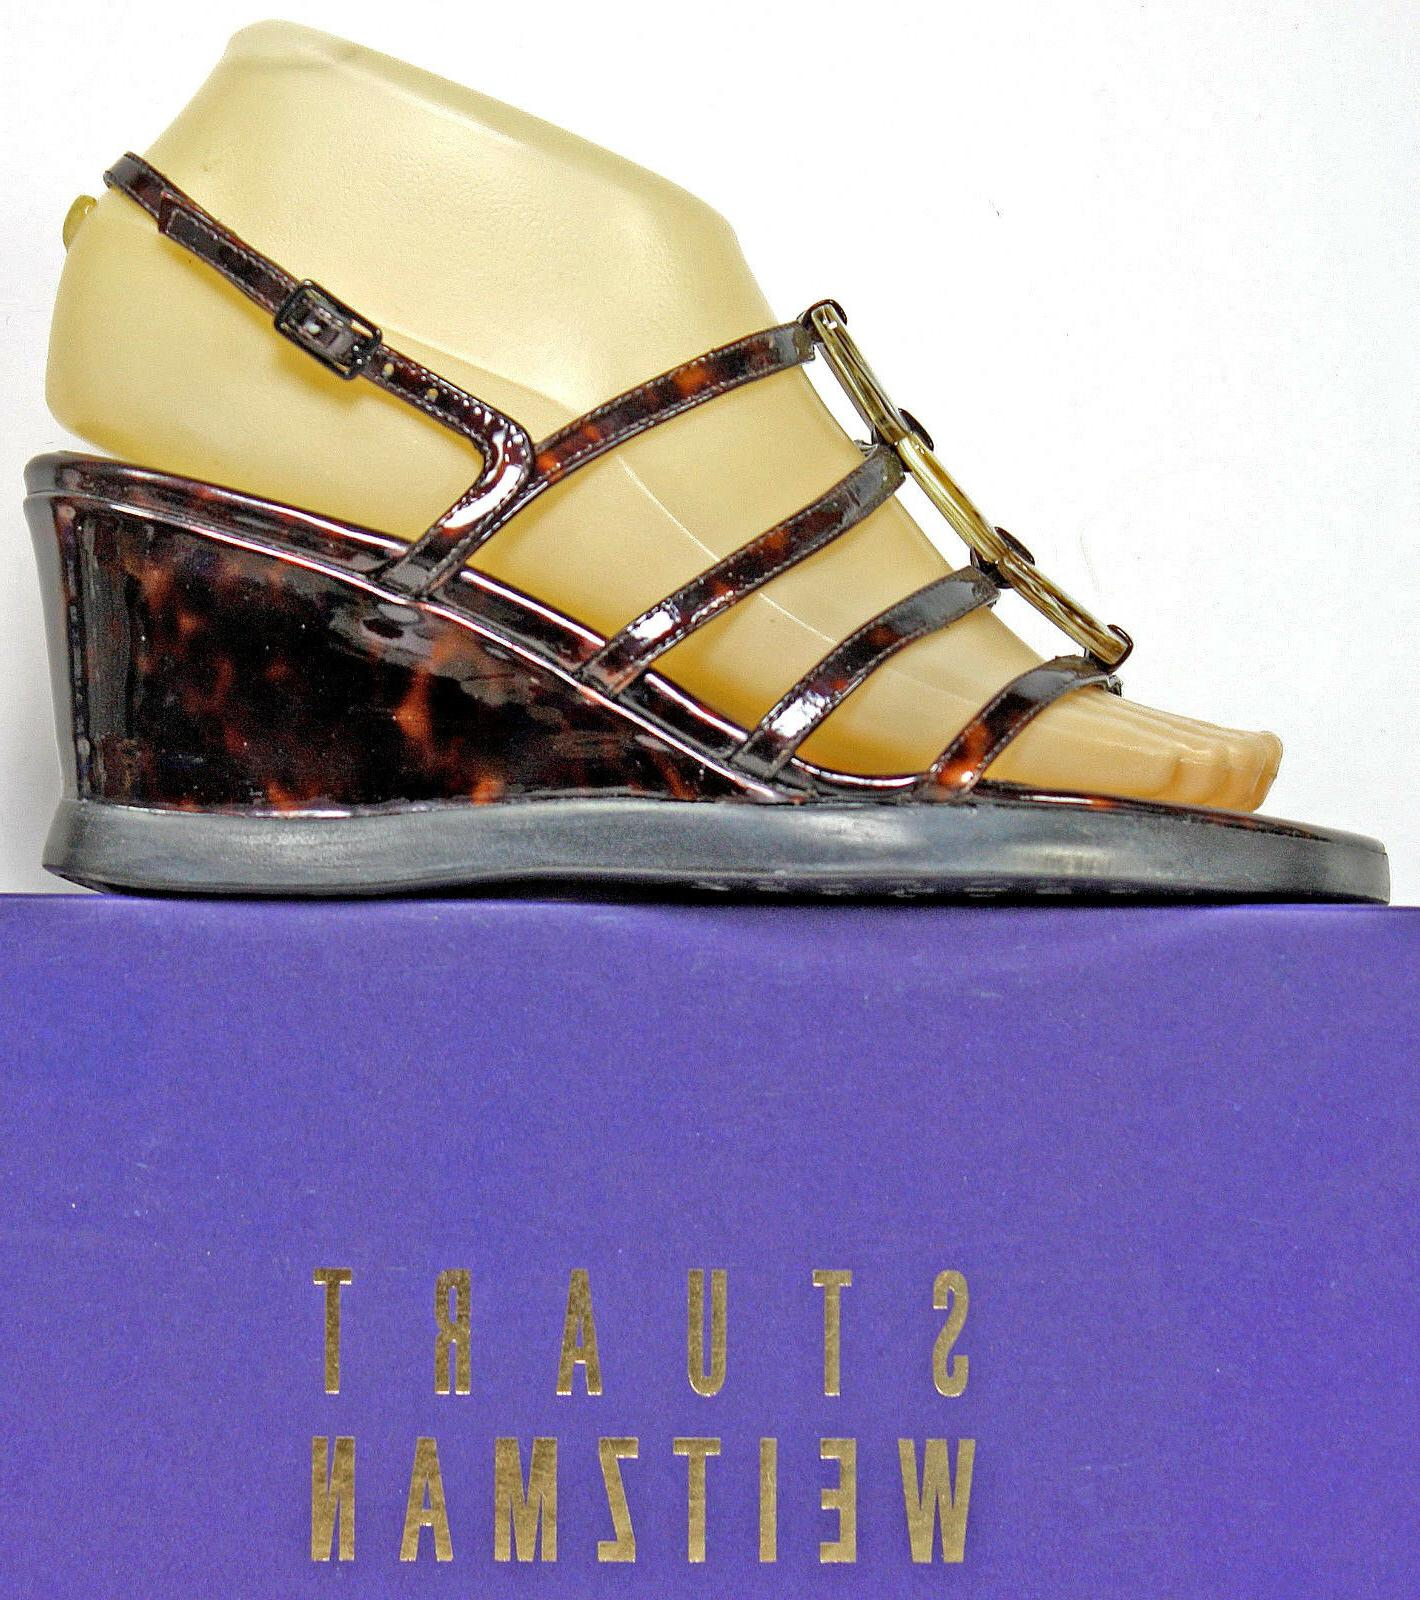 sandals size 5 5 w tortoise shell